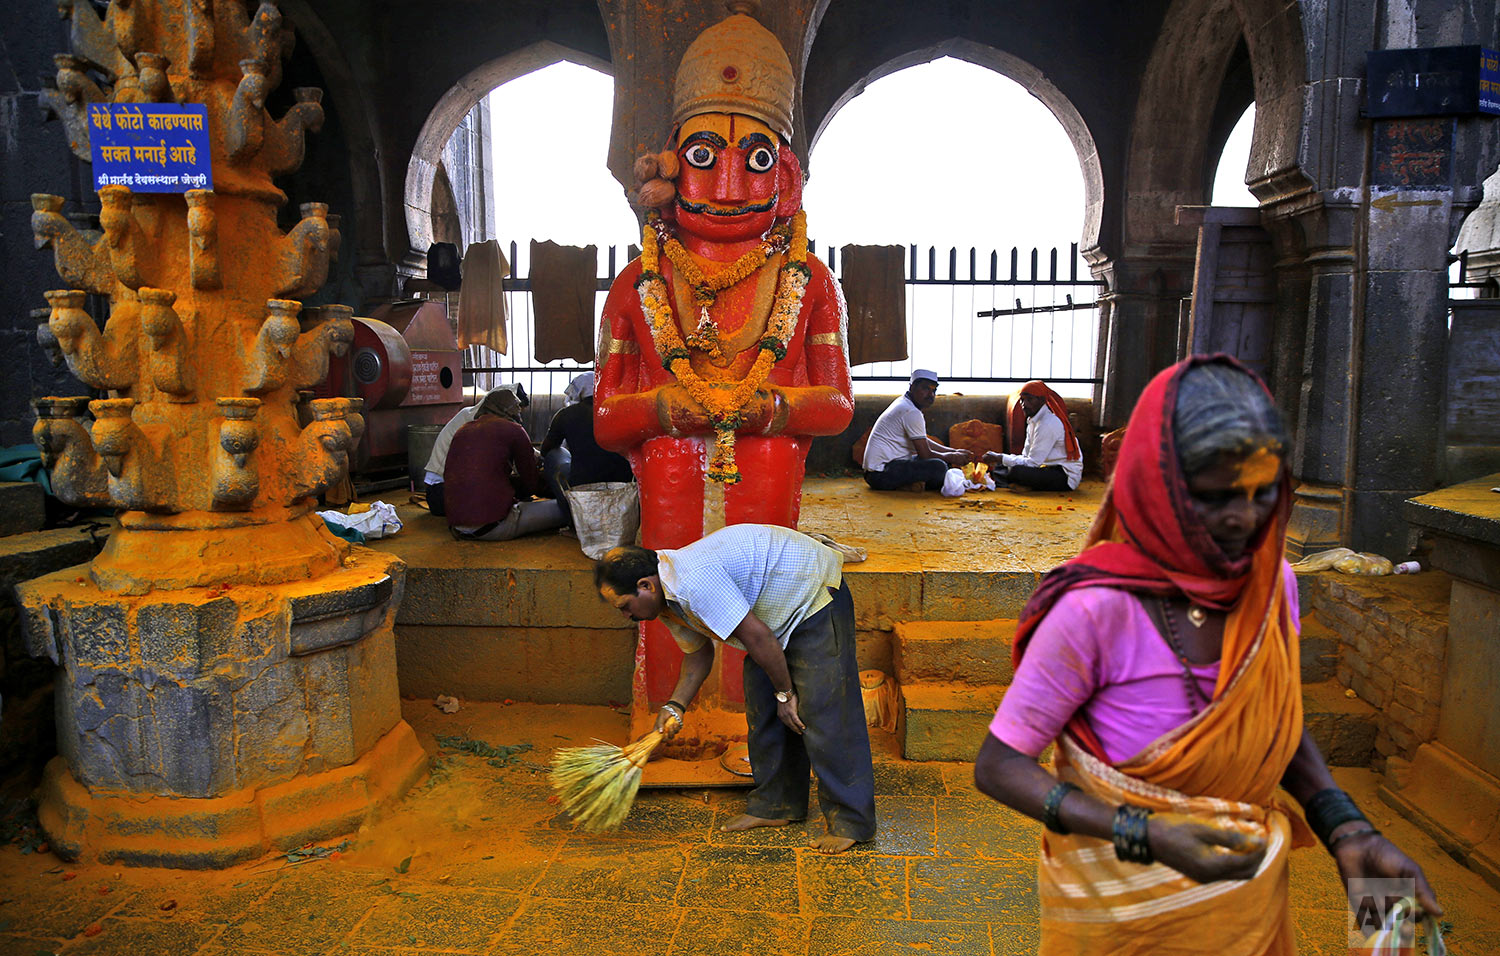 A devotees sweeps before the celebration of the Bhandara Festival, or the Festival of Turmeric, at the Jejuri temple in Pune district, Maharashtra state, India, Monday, June 3, 2019. (AP Photo/Rafiq Maqbool)